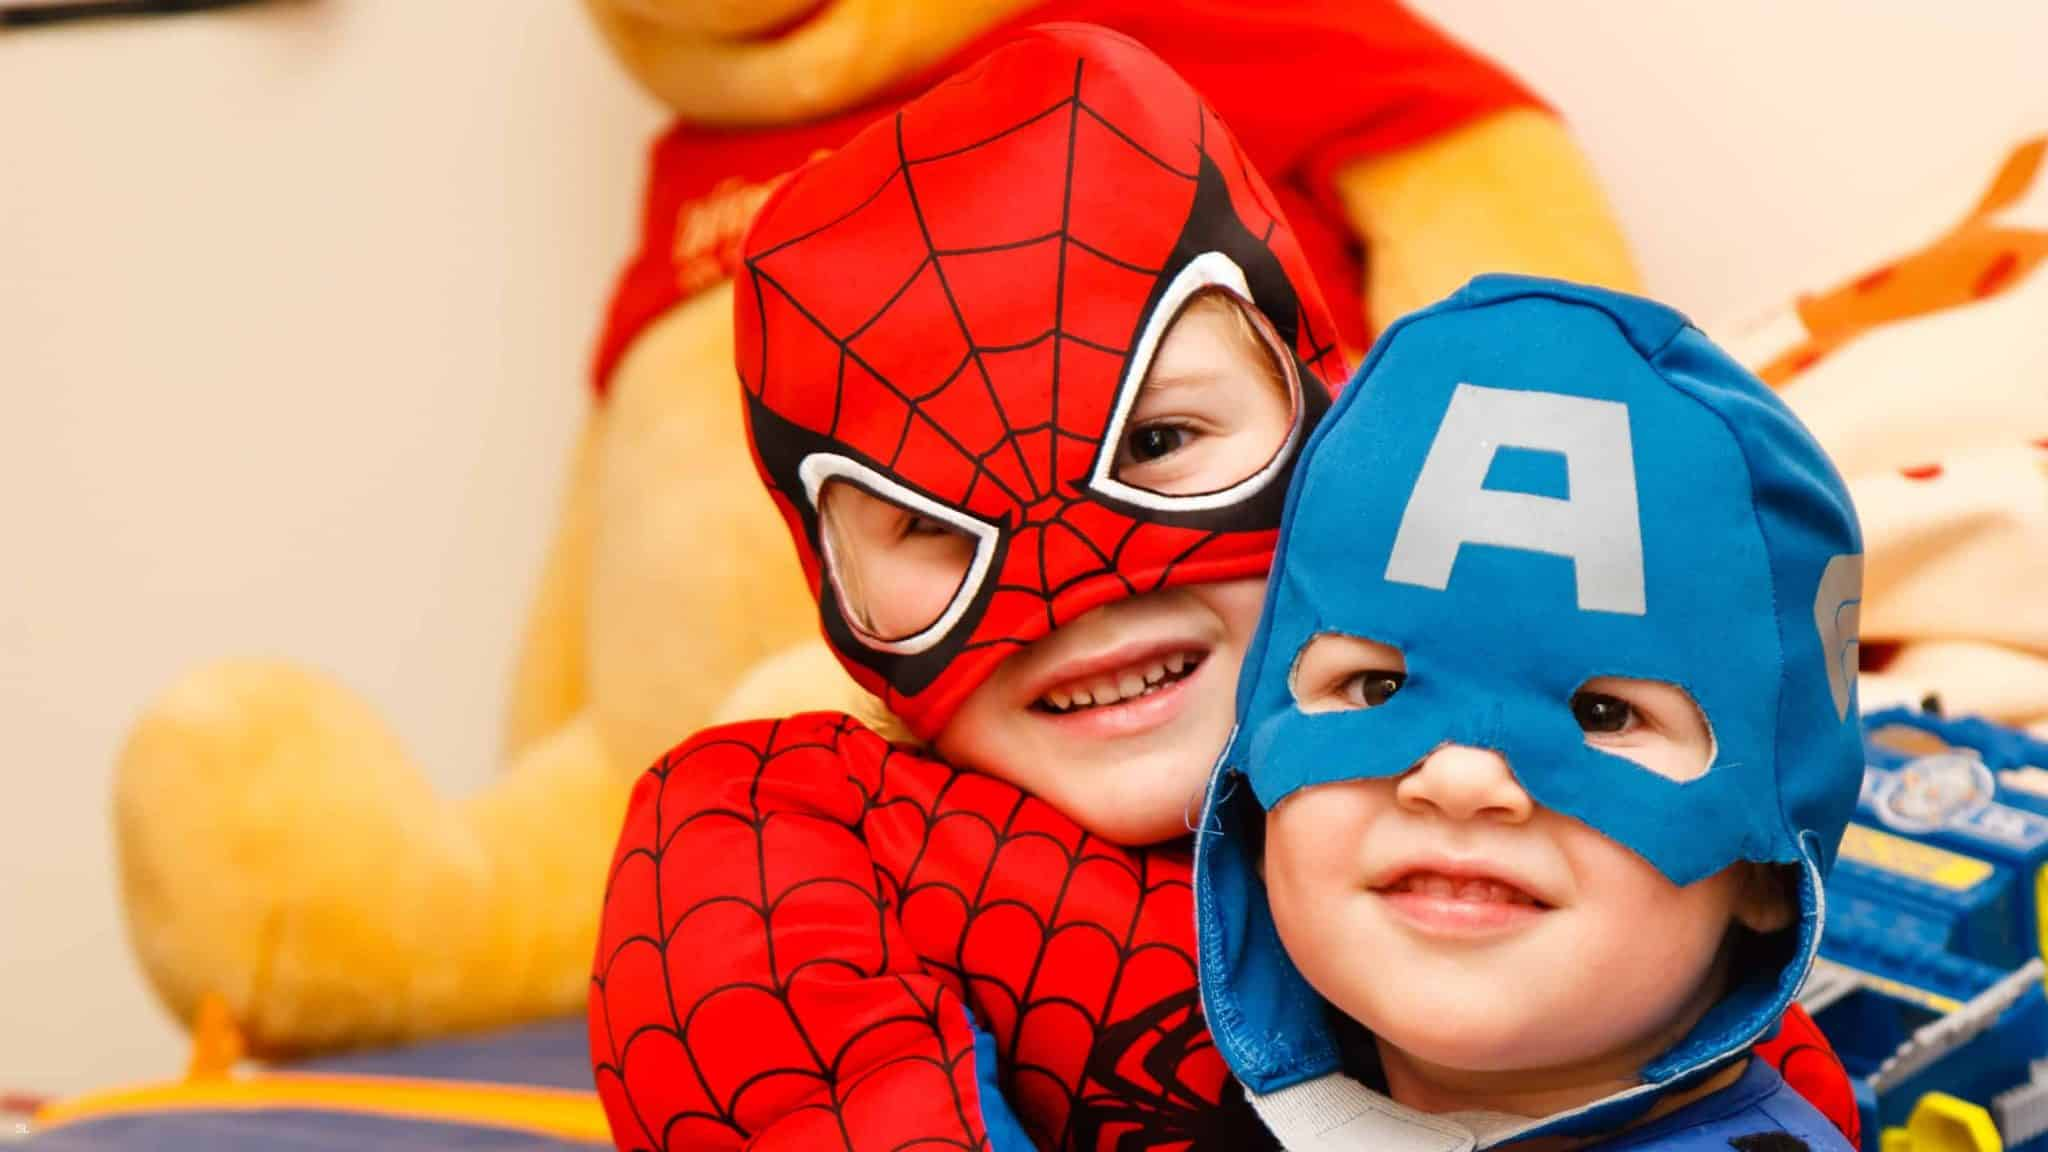 Two little boys in superhero costumes. Could you sew costumes like this as a side hustle?